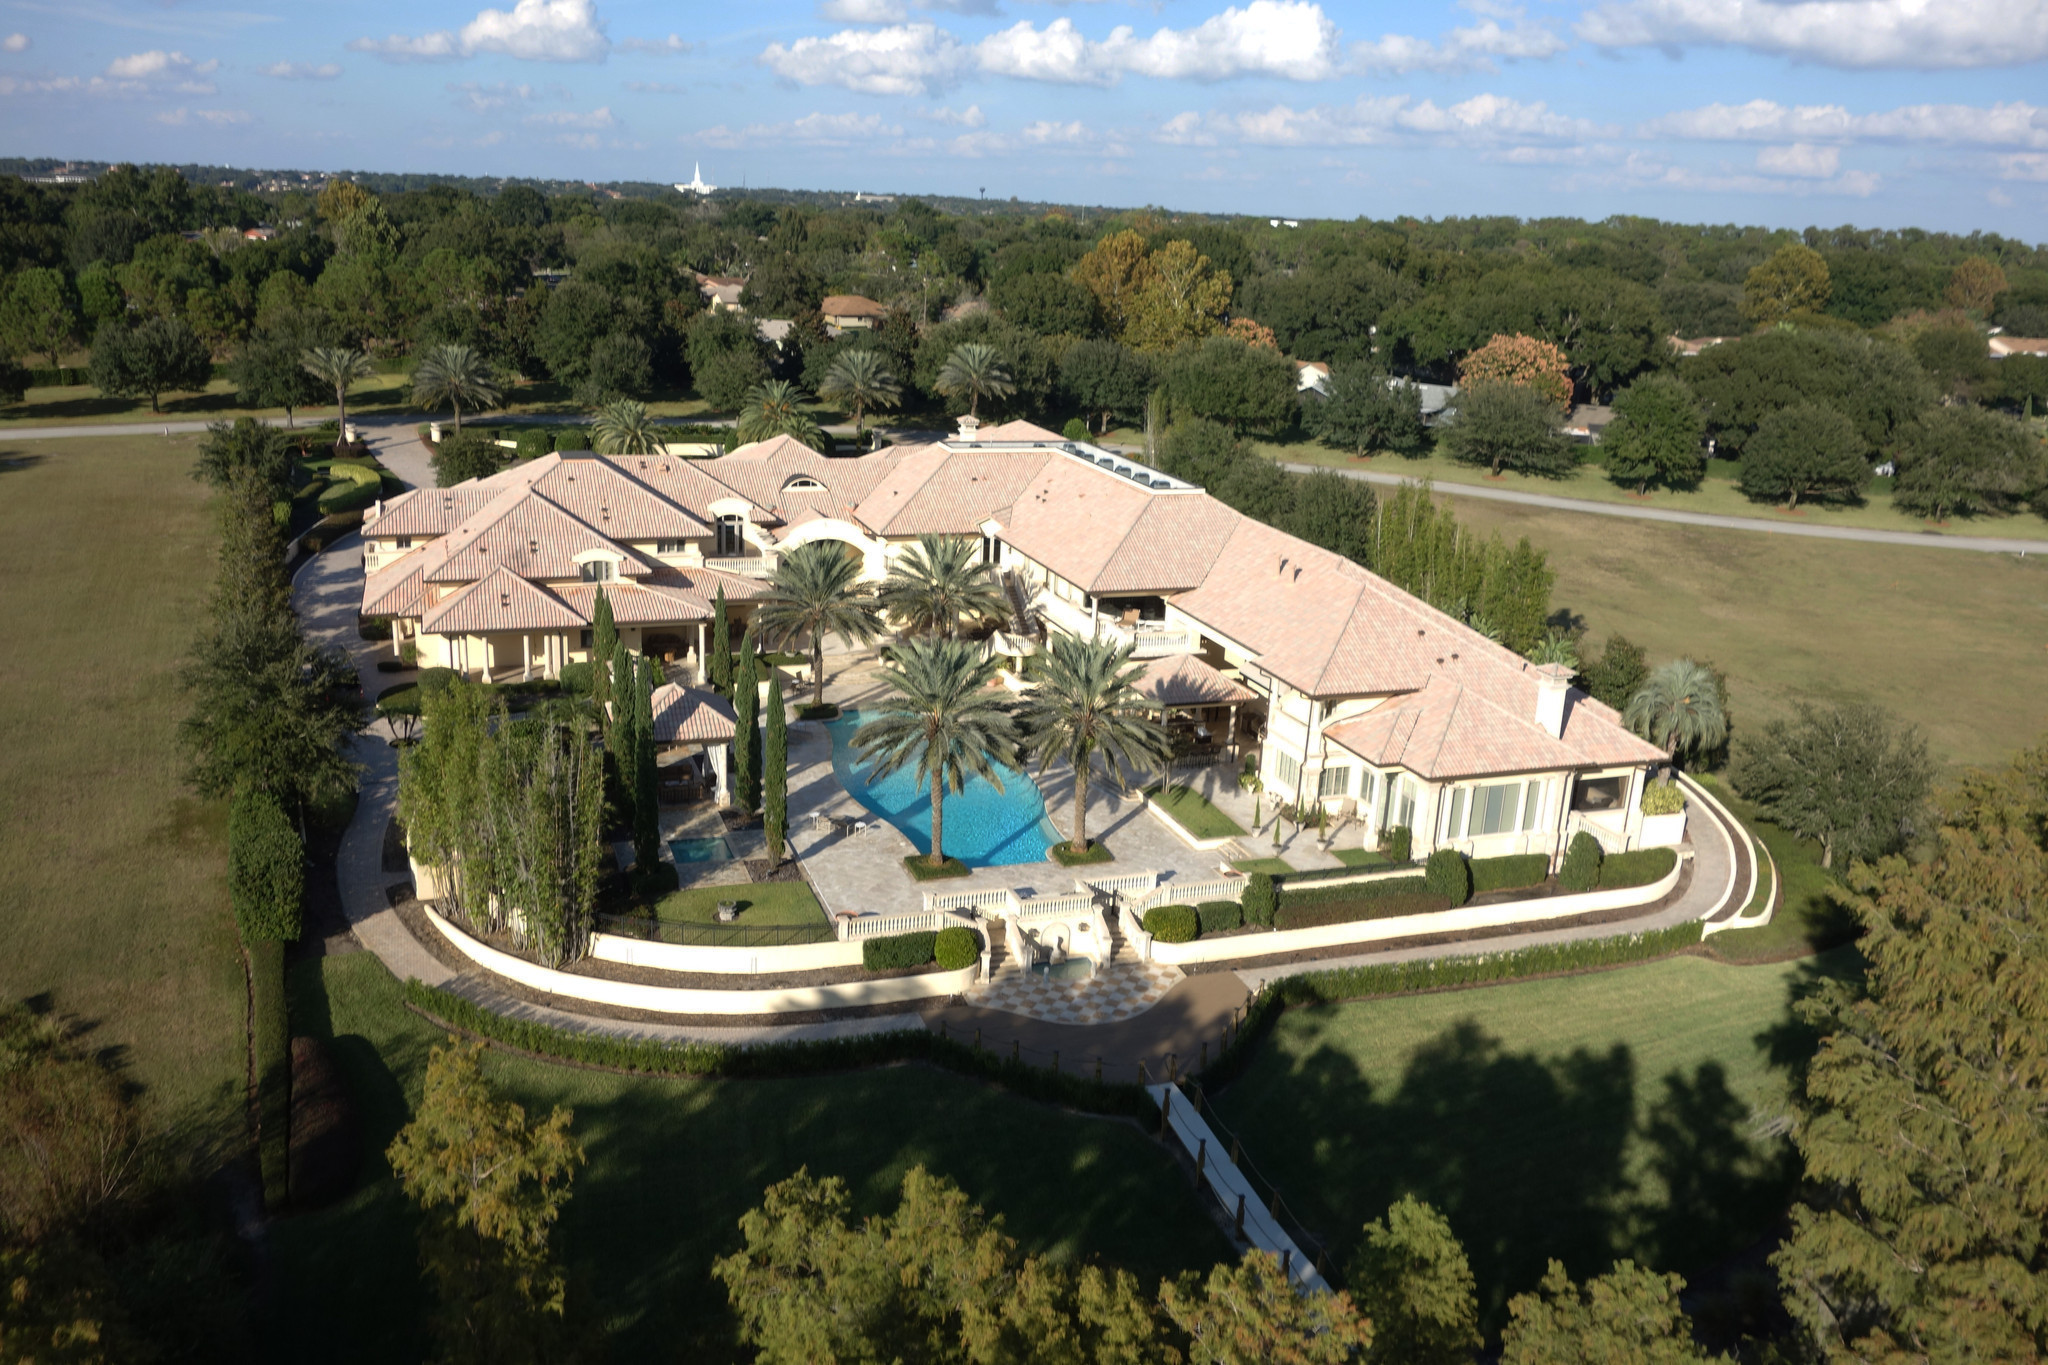 Central floridas most valuable mansions trend to winter park golden oak orlando sentinel